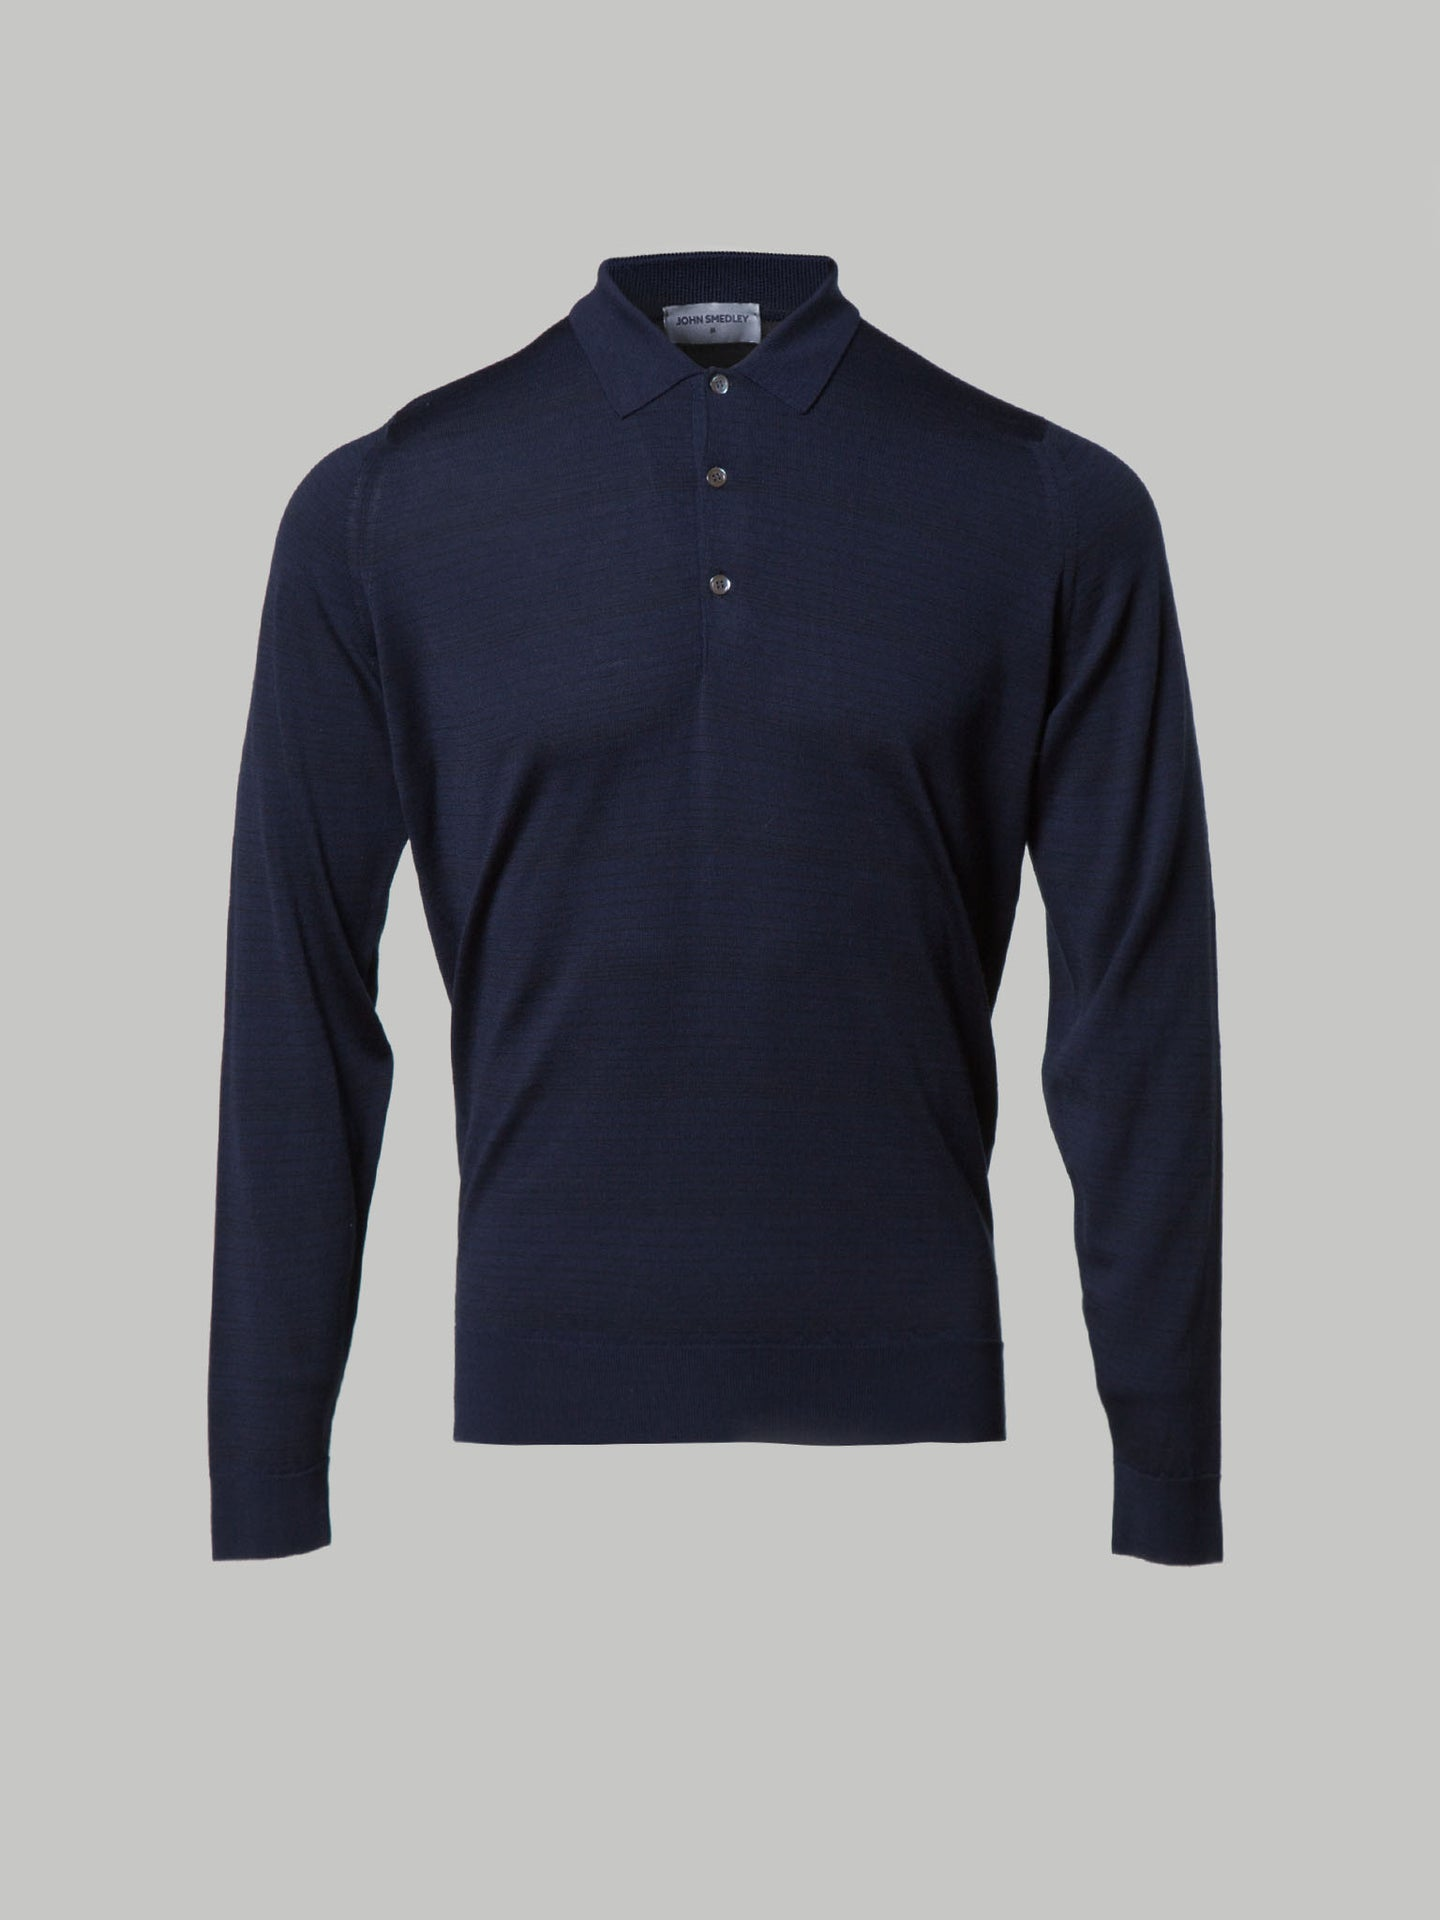 John Smedley Smooth Polo (Navy with Black Pin Stripe Contrast)